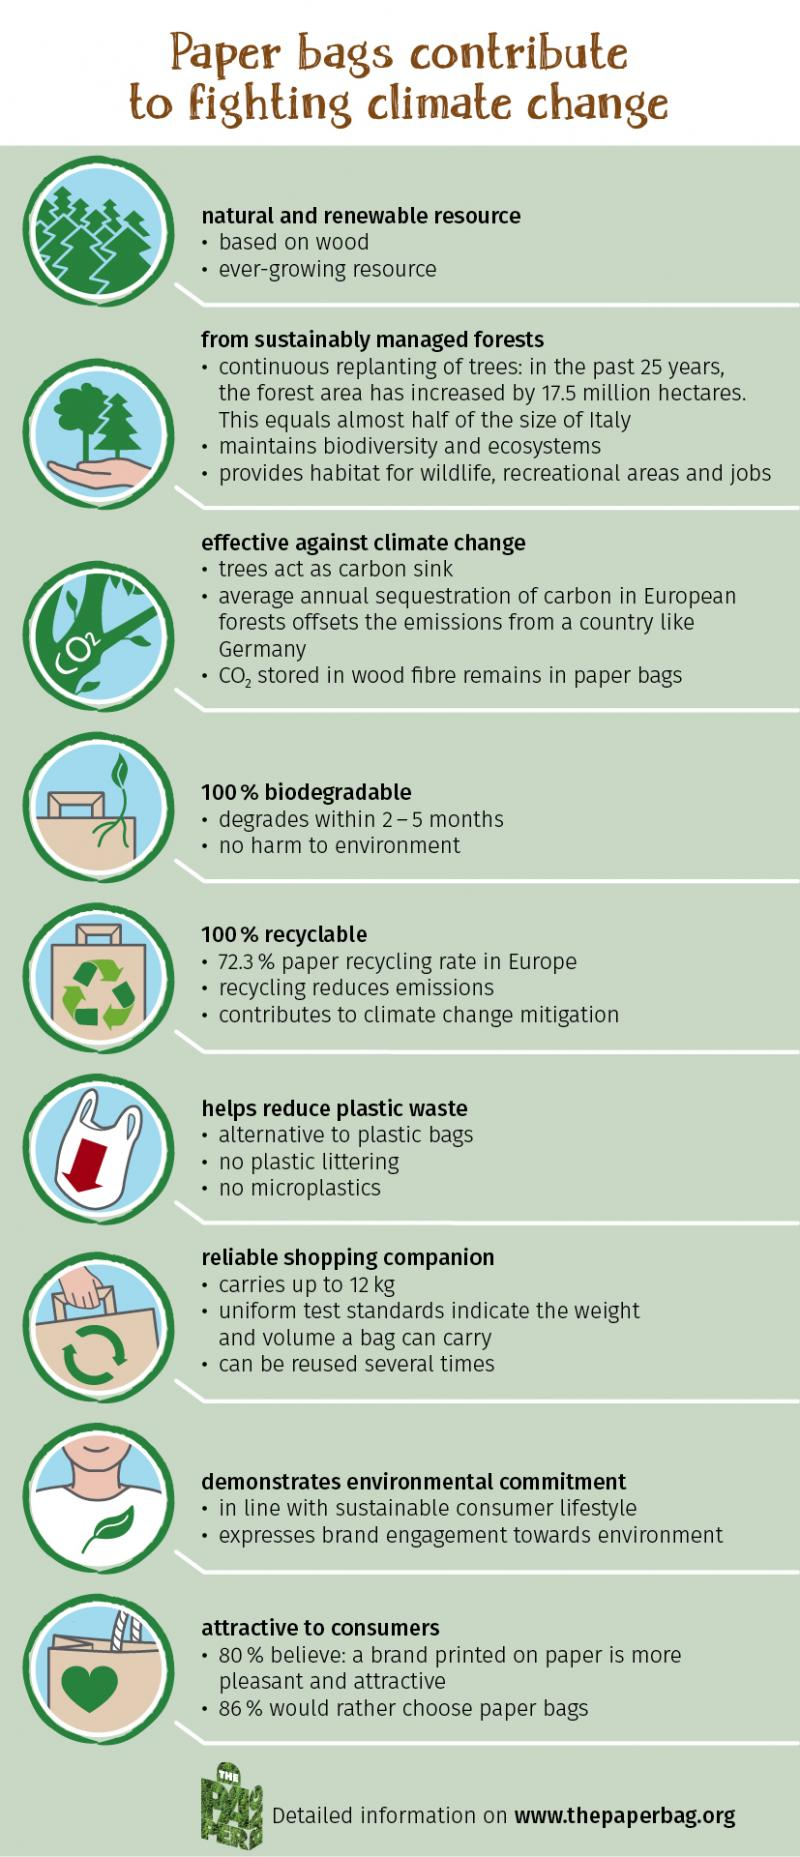 The infographic summarises the most important facts about paper bags.